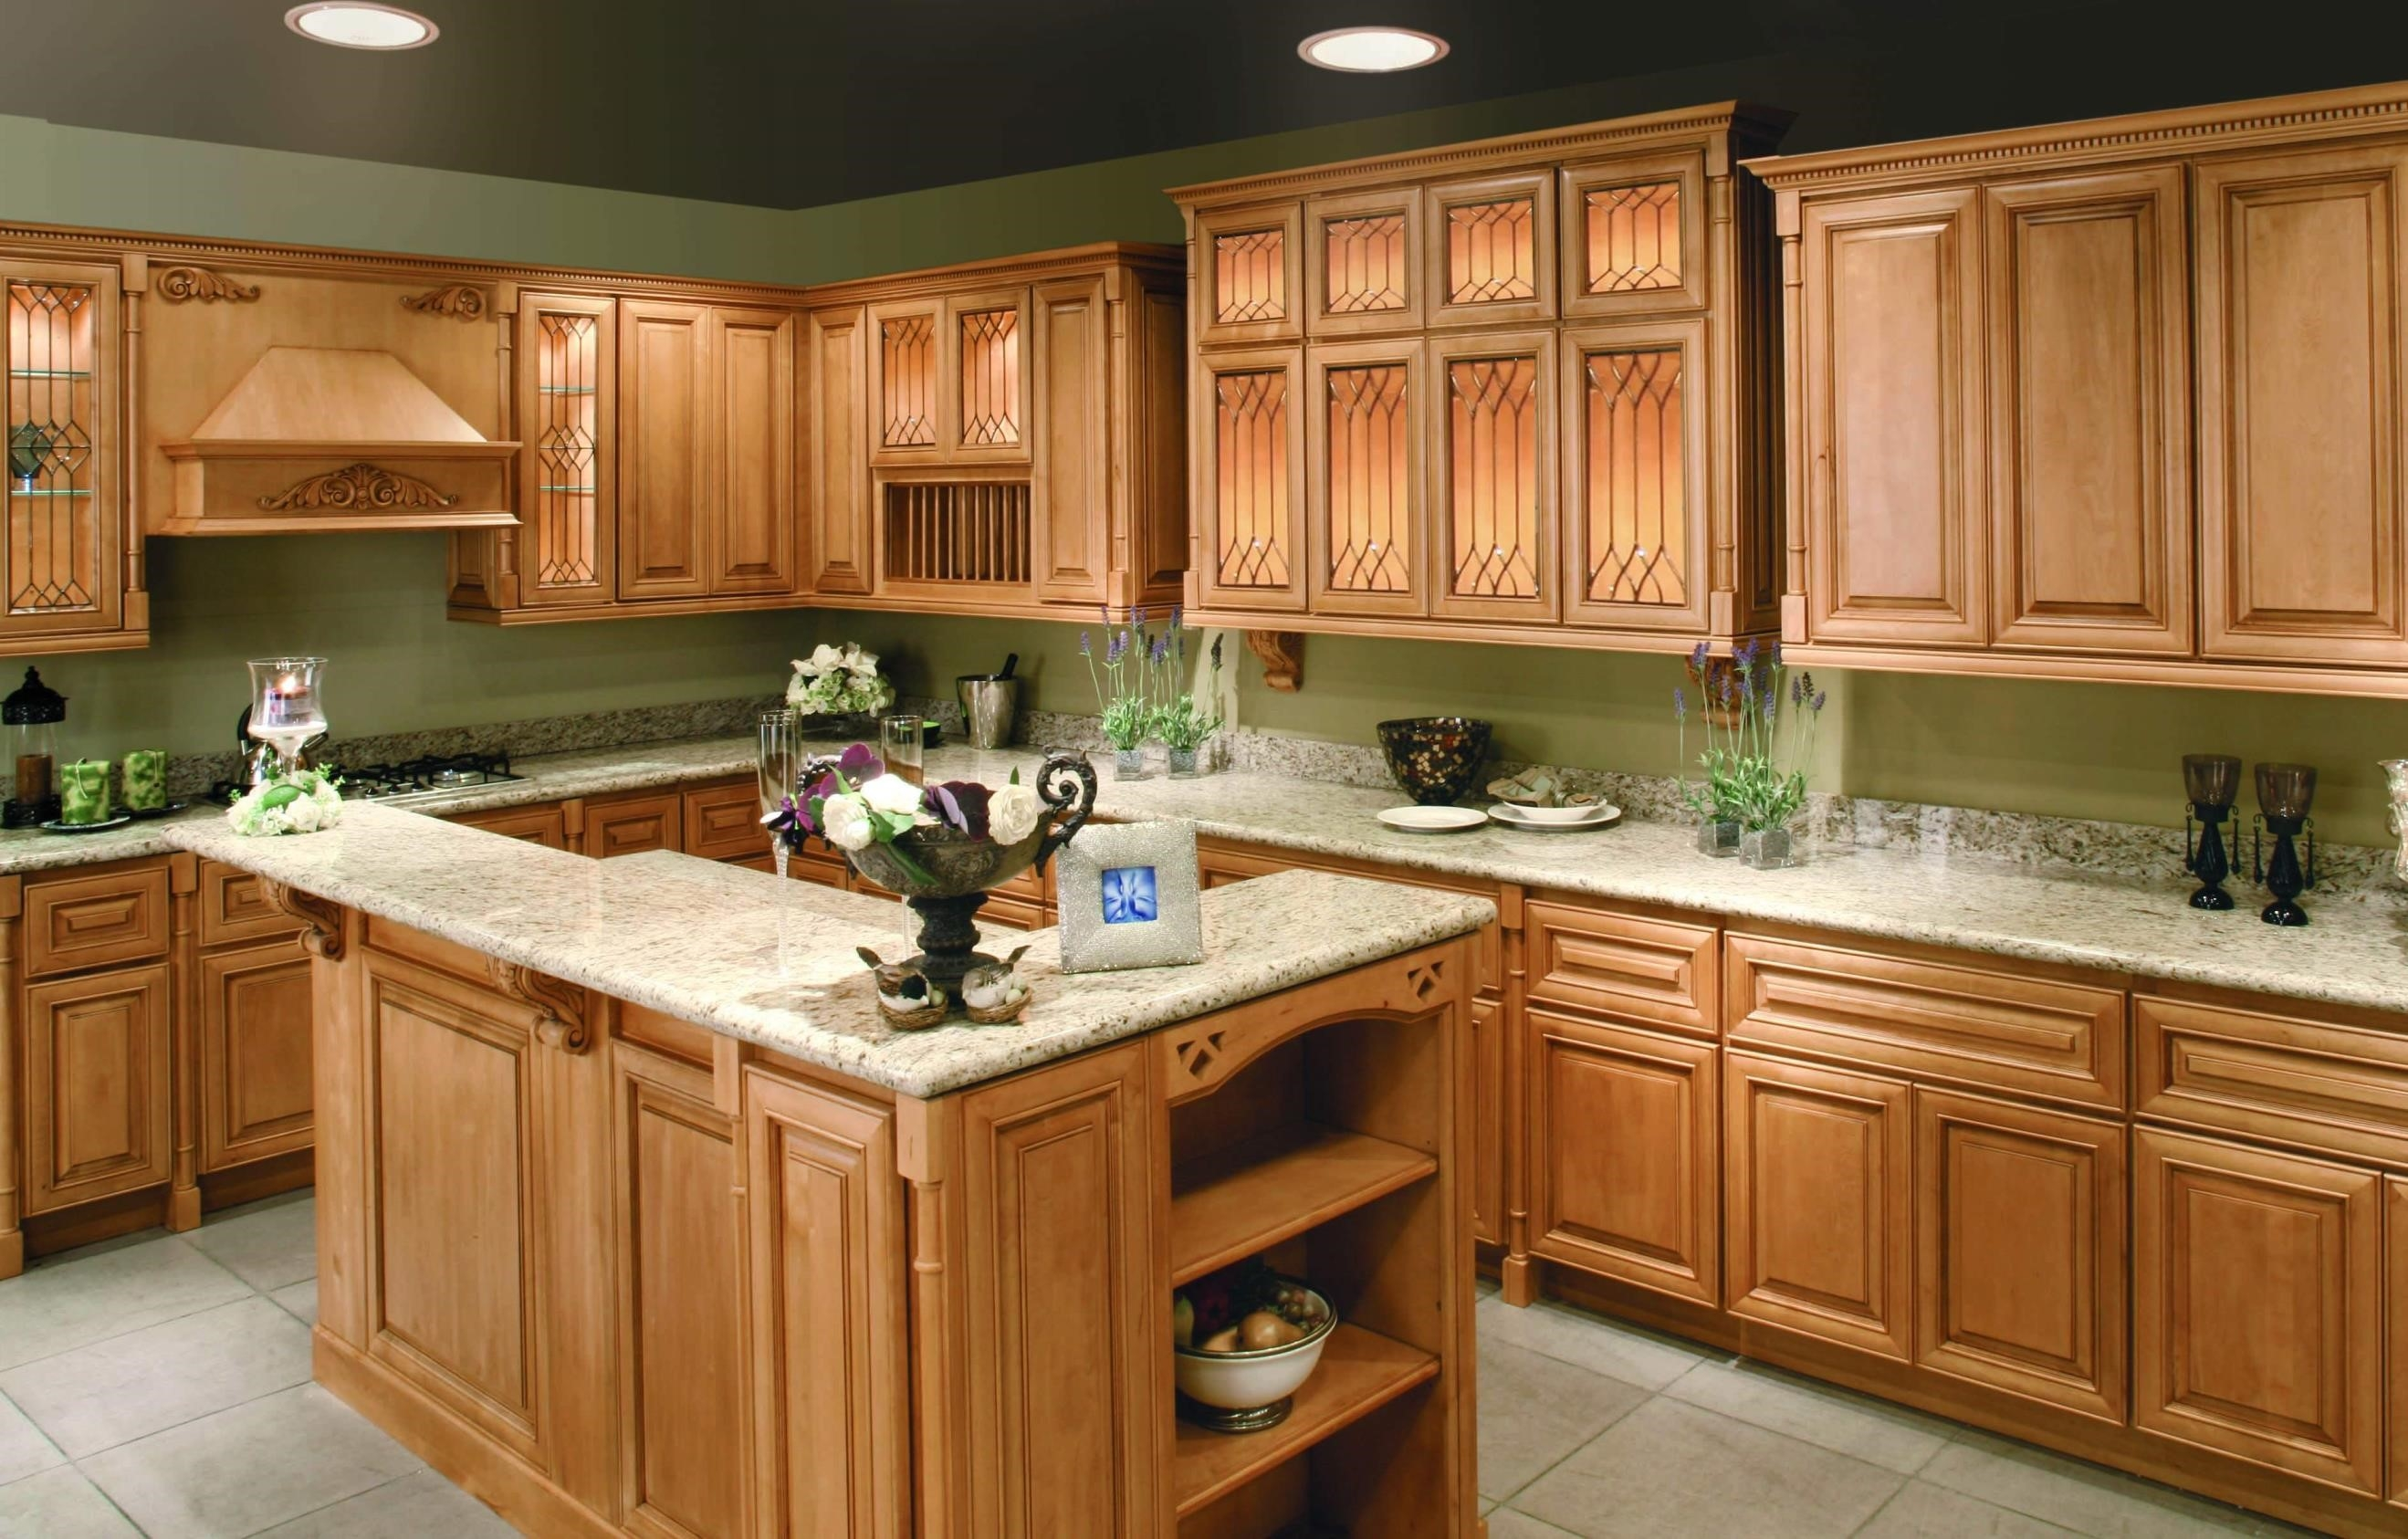 Maple Kitchen Cabinets With White Appliances